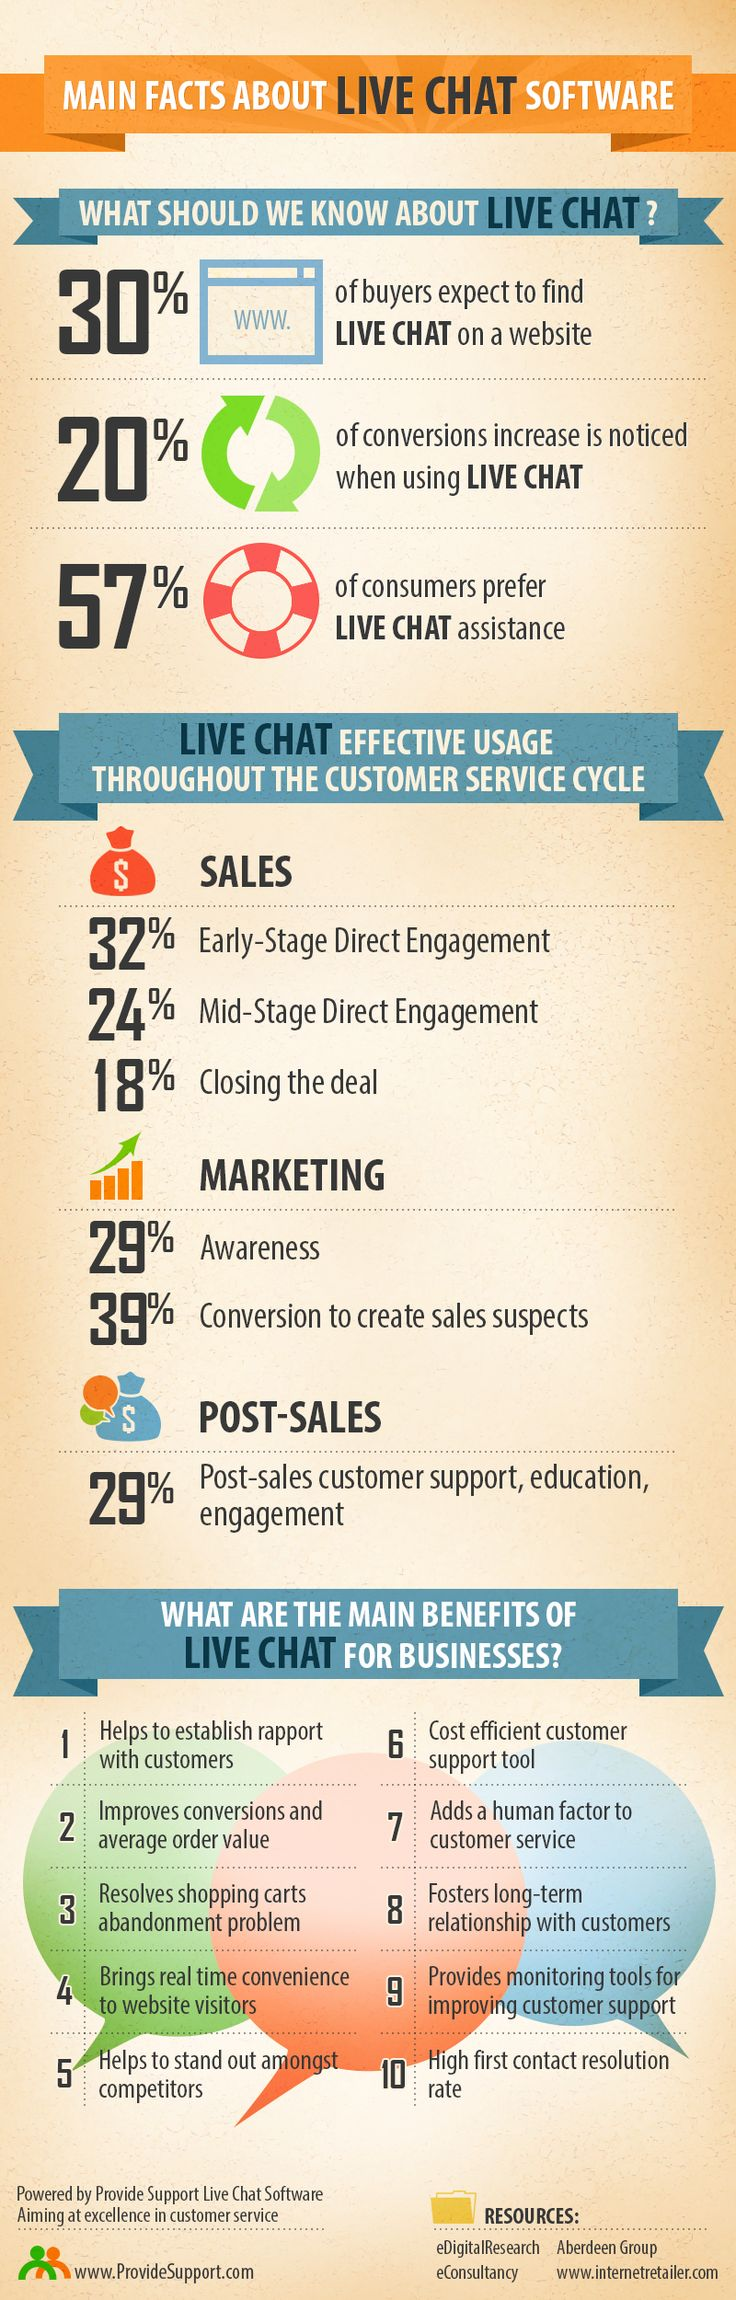 Main facts about live chat software infographic http